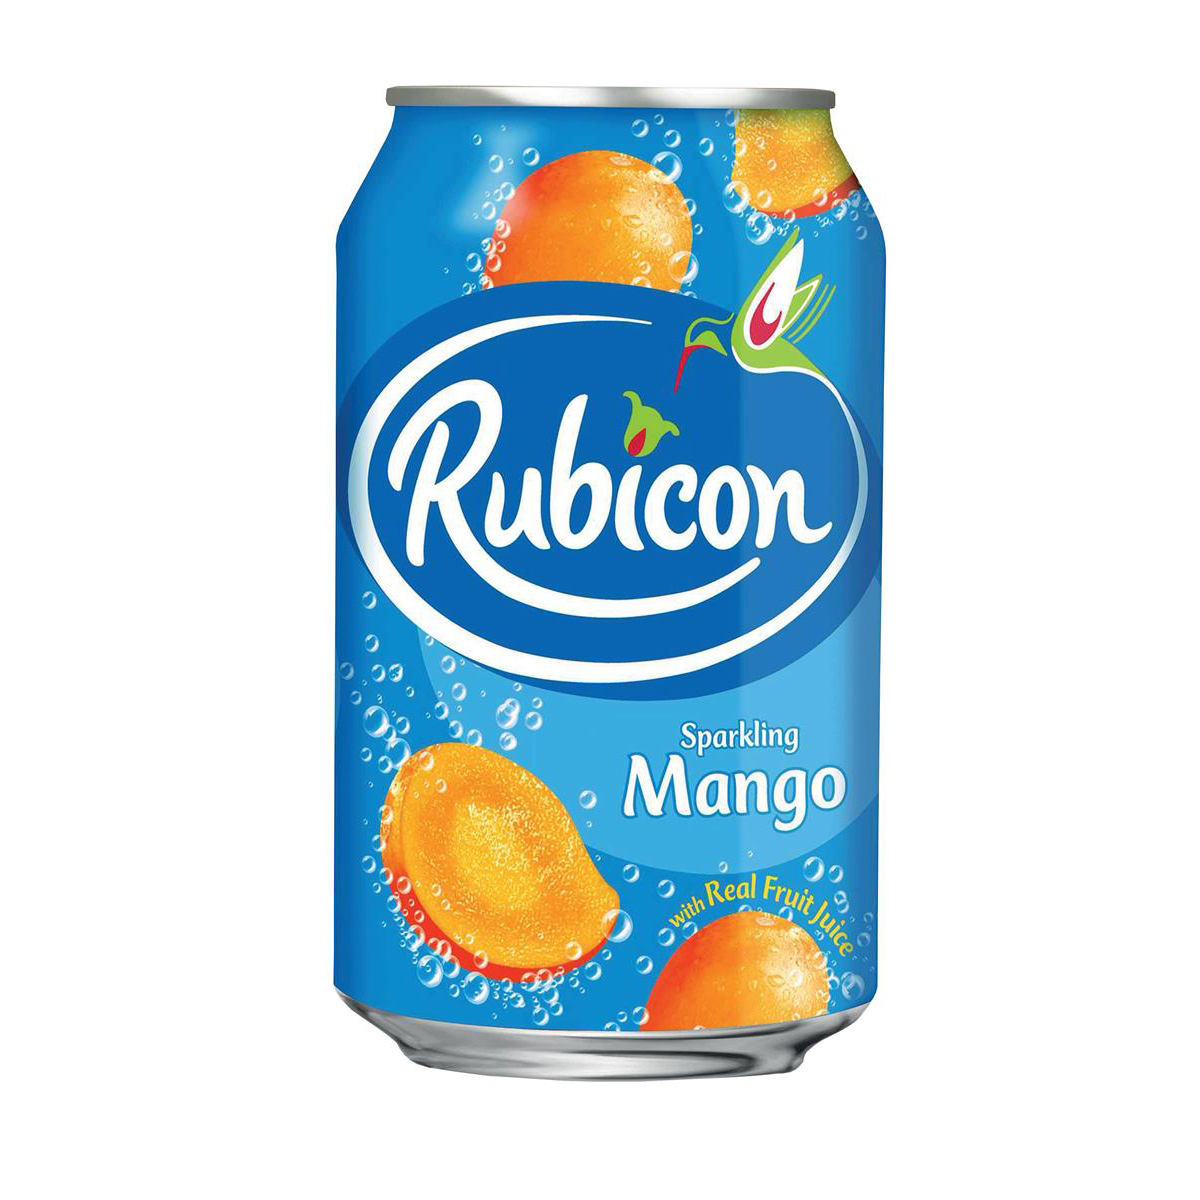 Rubicon Mango Sparkling Drink Can 330ml Ref 1414132 [Pack 24]